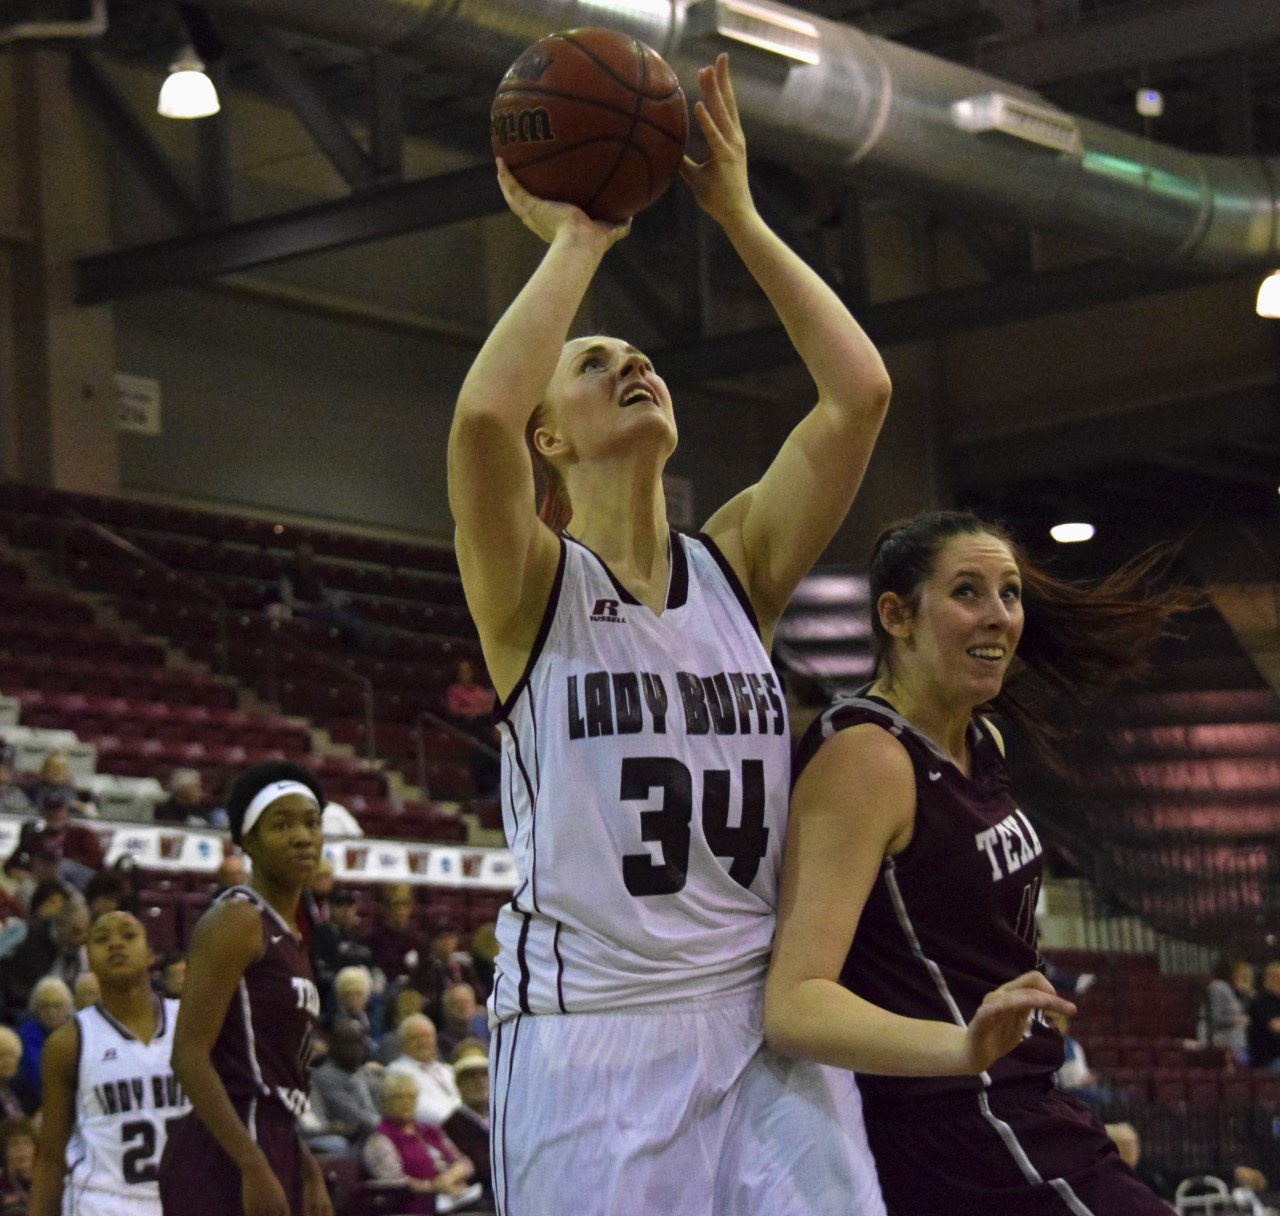 West Texas A&M's Maddison Wild shoots the ball over a Texas Women's University defender during the game on Feb. 4 in the First United Bank Center in Canyon.